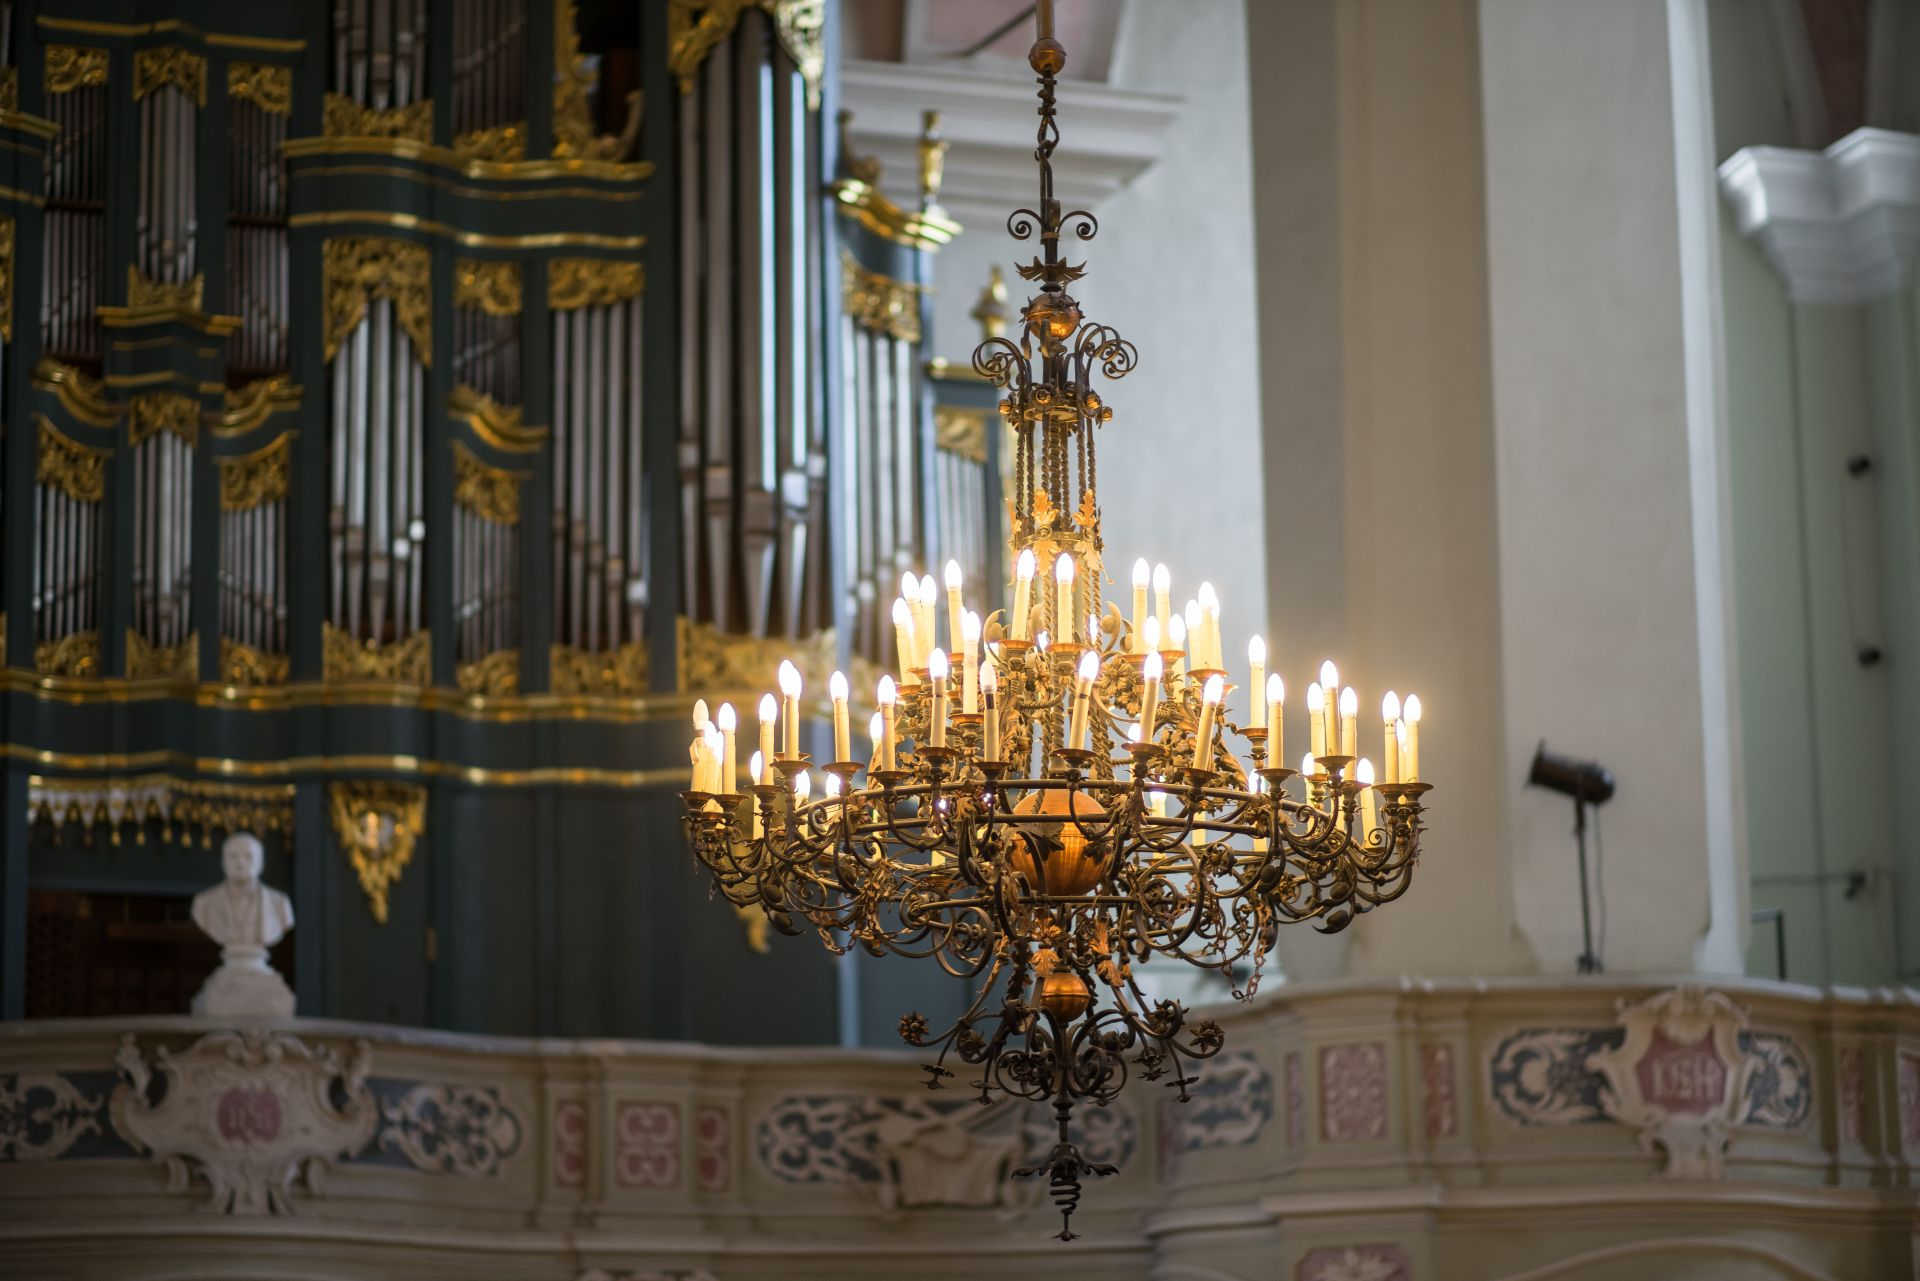 Chandelier at the Church of John the Baptist and St. John the Apostle and Evangelist in Vilnius. Photo by Povilas Jarmala, 2017